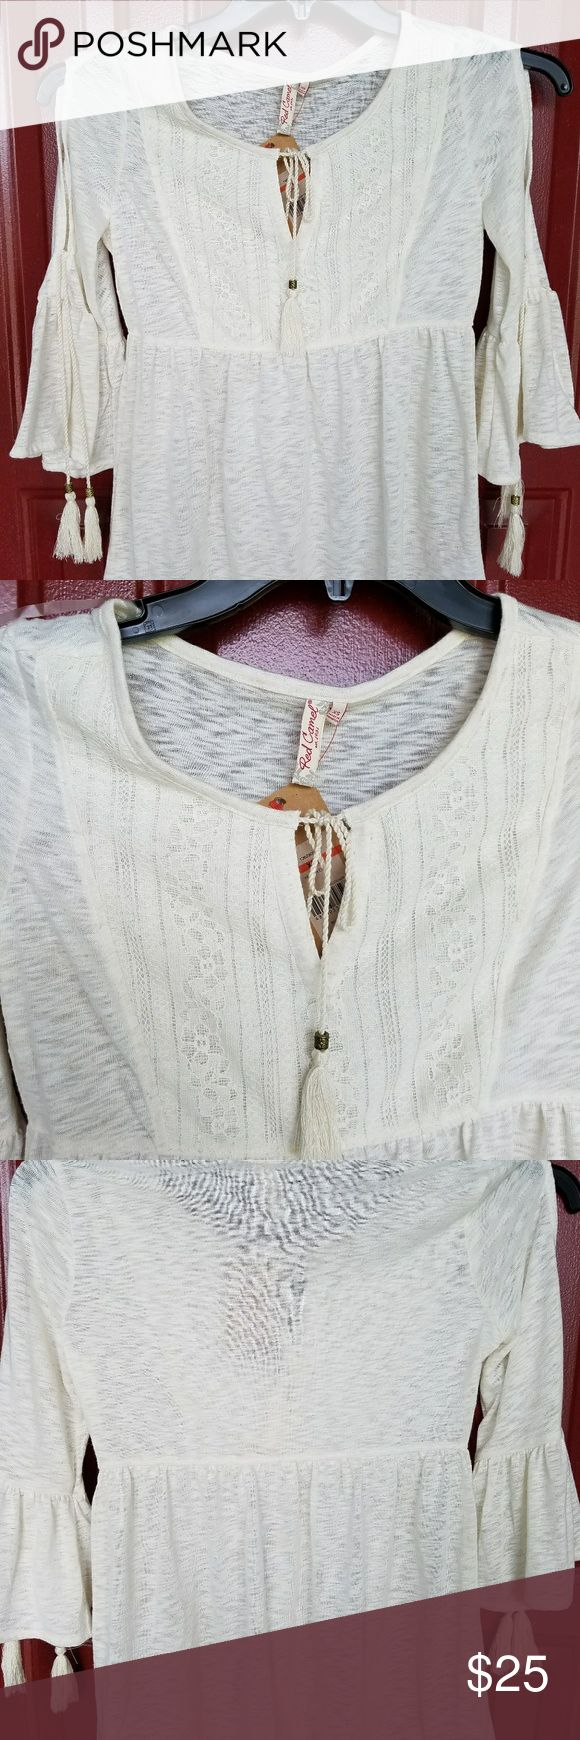 Pheasant top Cute white pheasant top. Has tassels on the arms and the neck. Made by red camel. 3/4 sleeve. Red Camel Tops Blouses